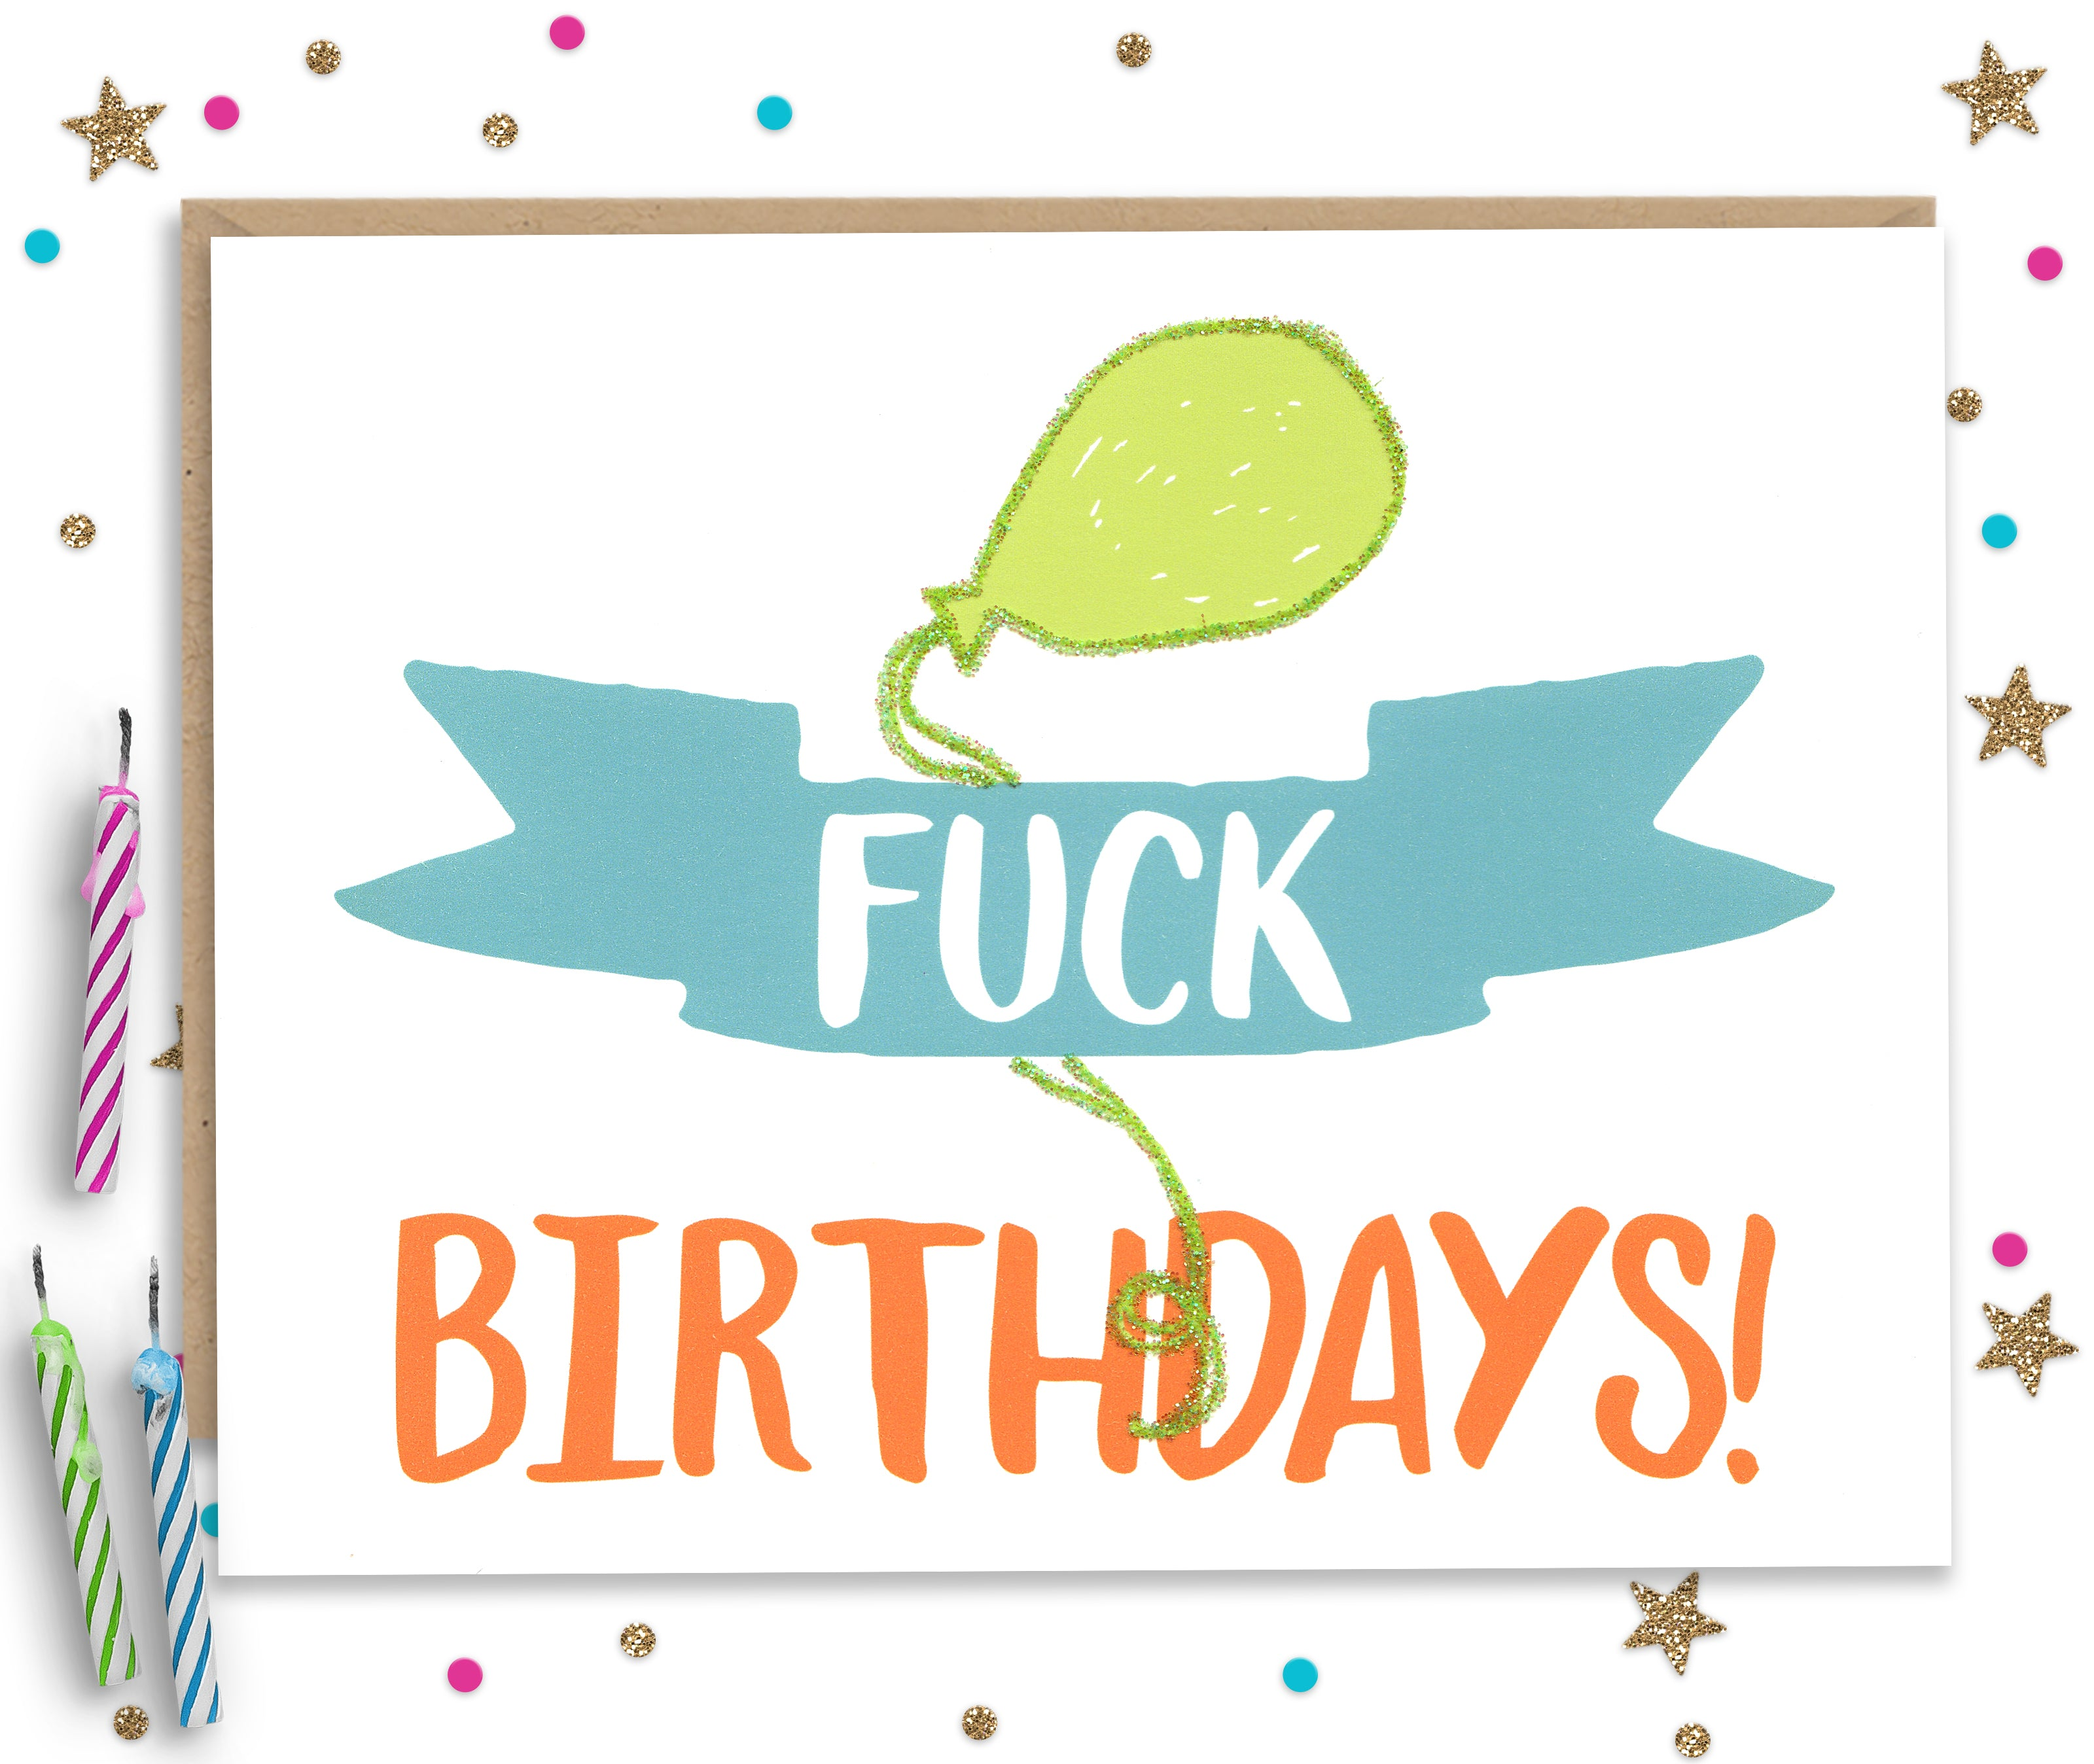 Funny handmade birthday cards fourletterwordcards fuck birthdays funny birthday card bookmarktalkfo Images